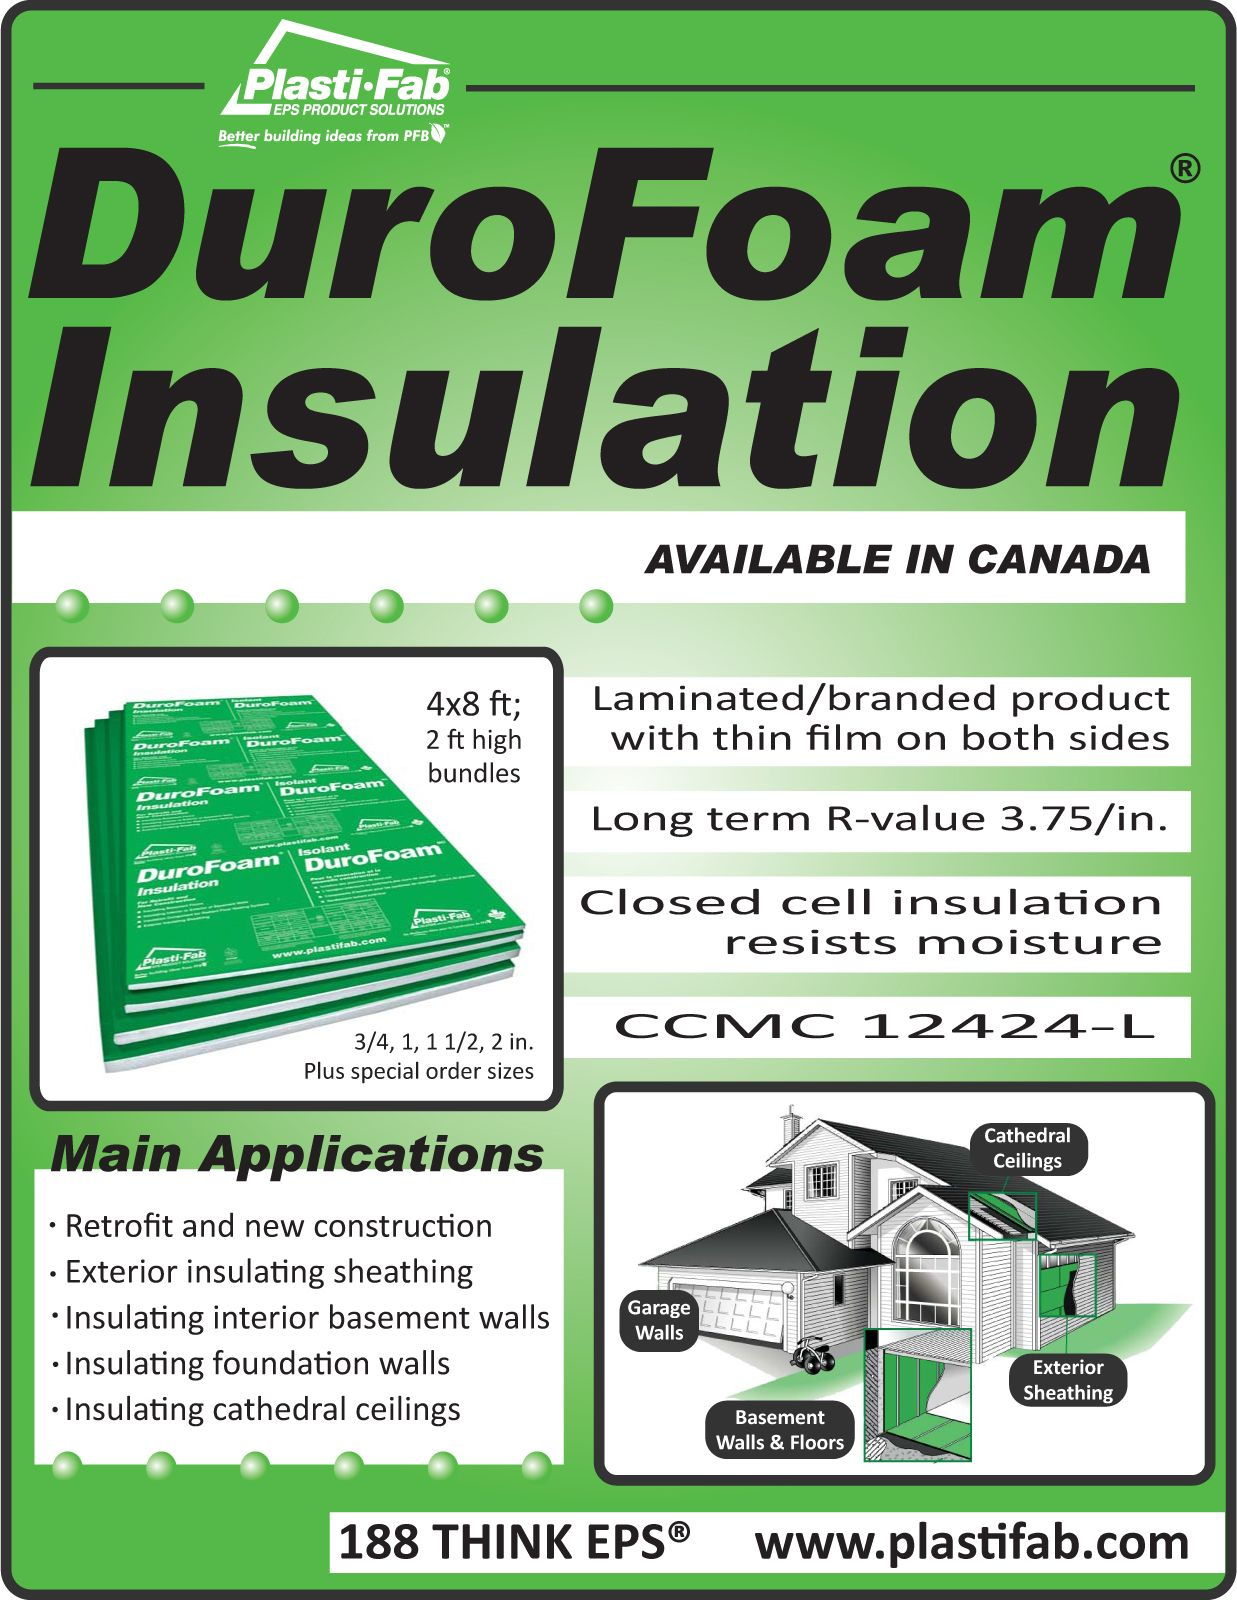 If You Are Remodeling Your Home Or Building A New One Durofoam Insulation Available Acro Waterproofing Basement Insulating Garage Walls Basement Insulation